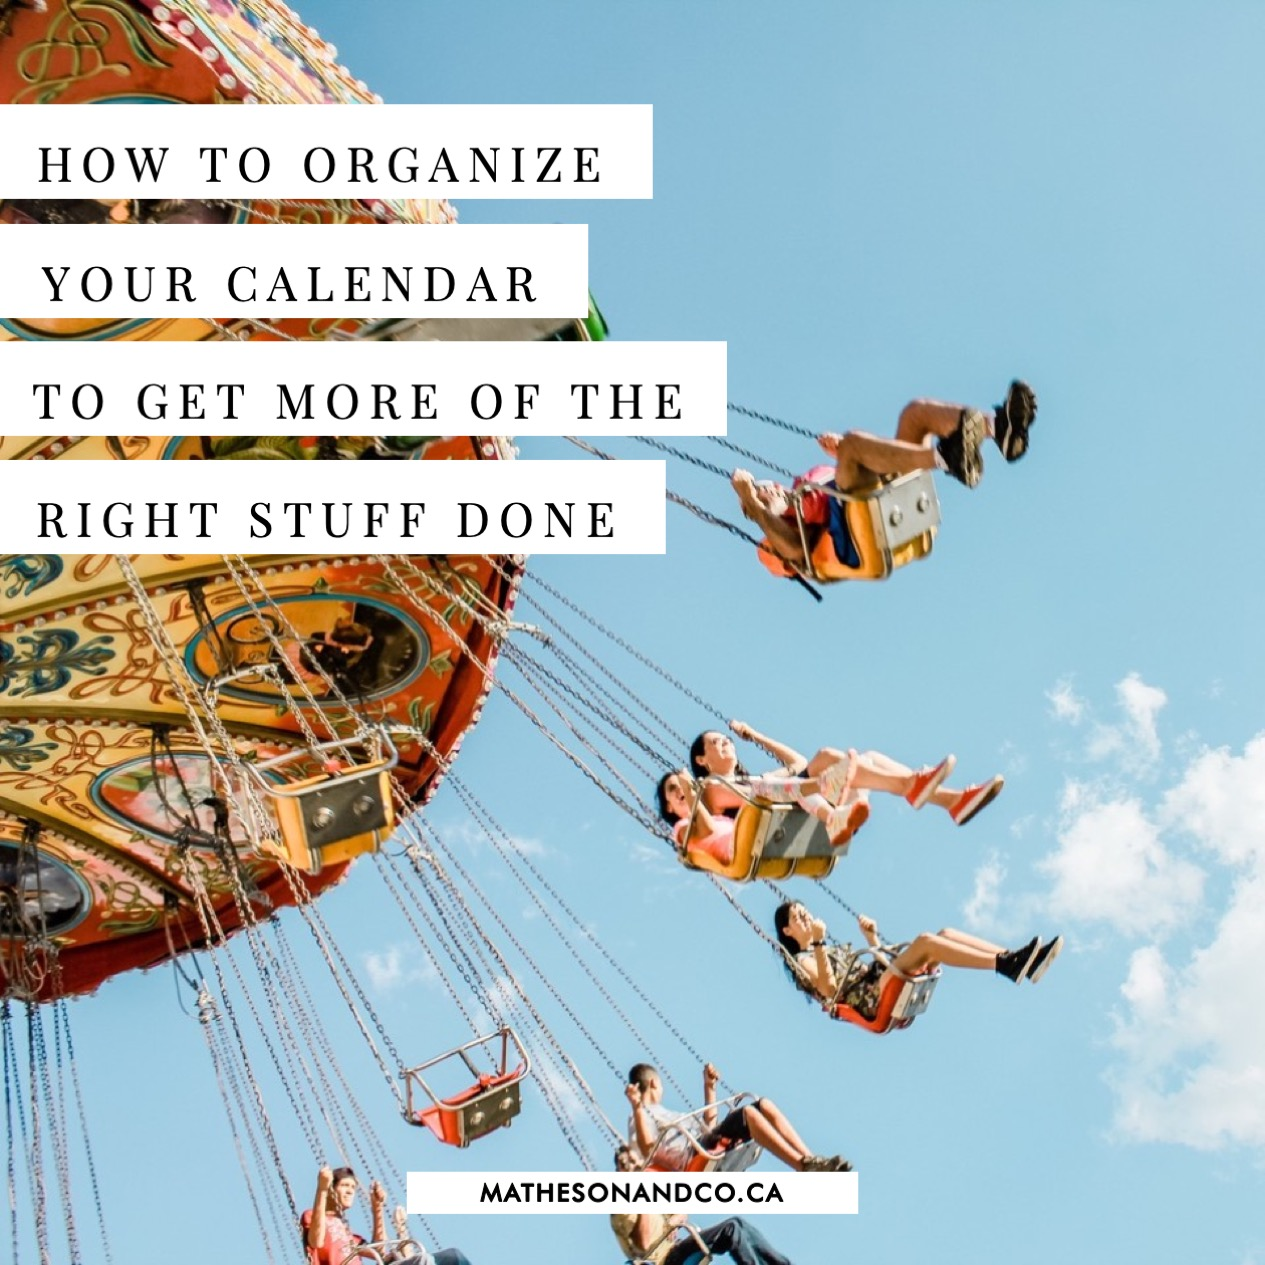 how to organize your calendar so you get more of the right stuff done